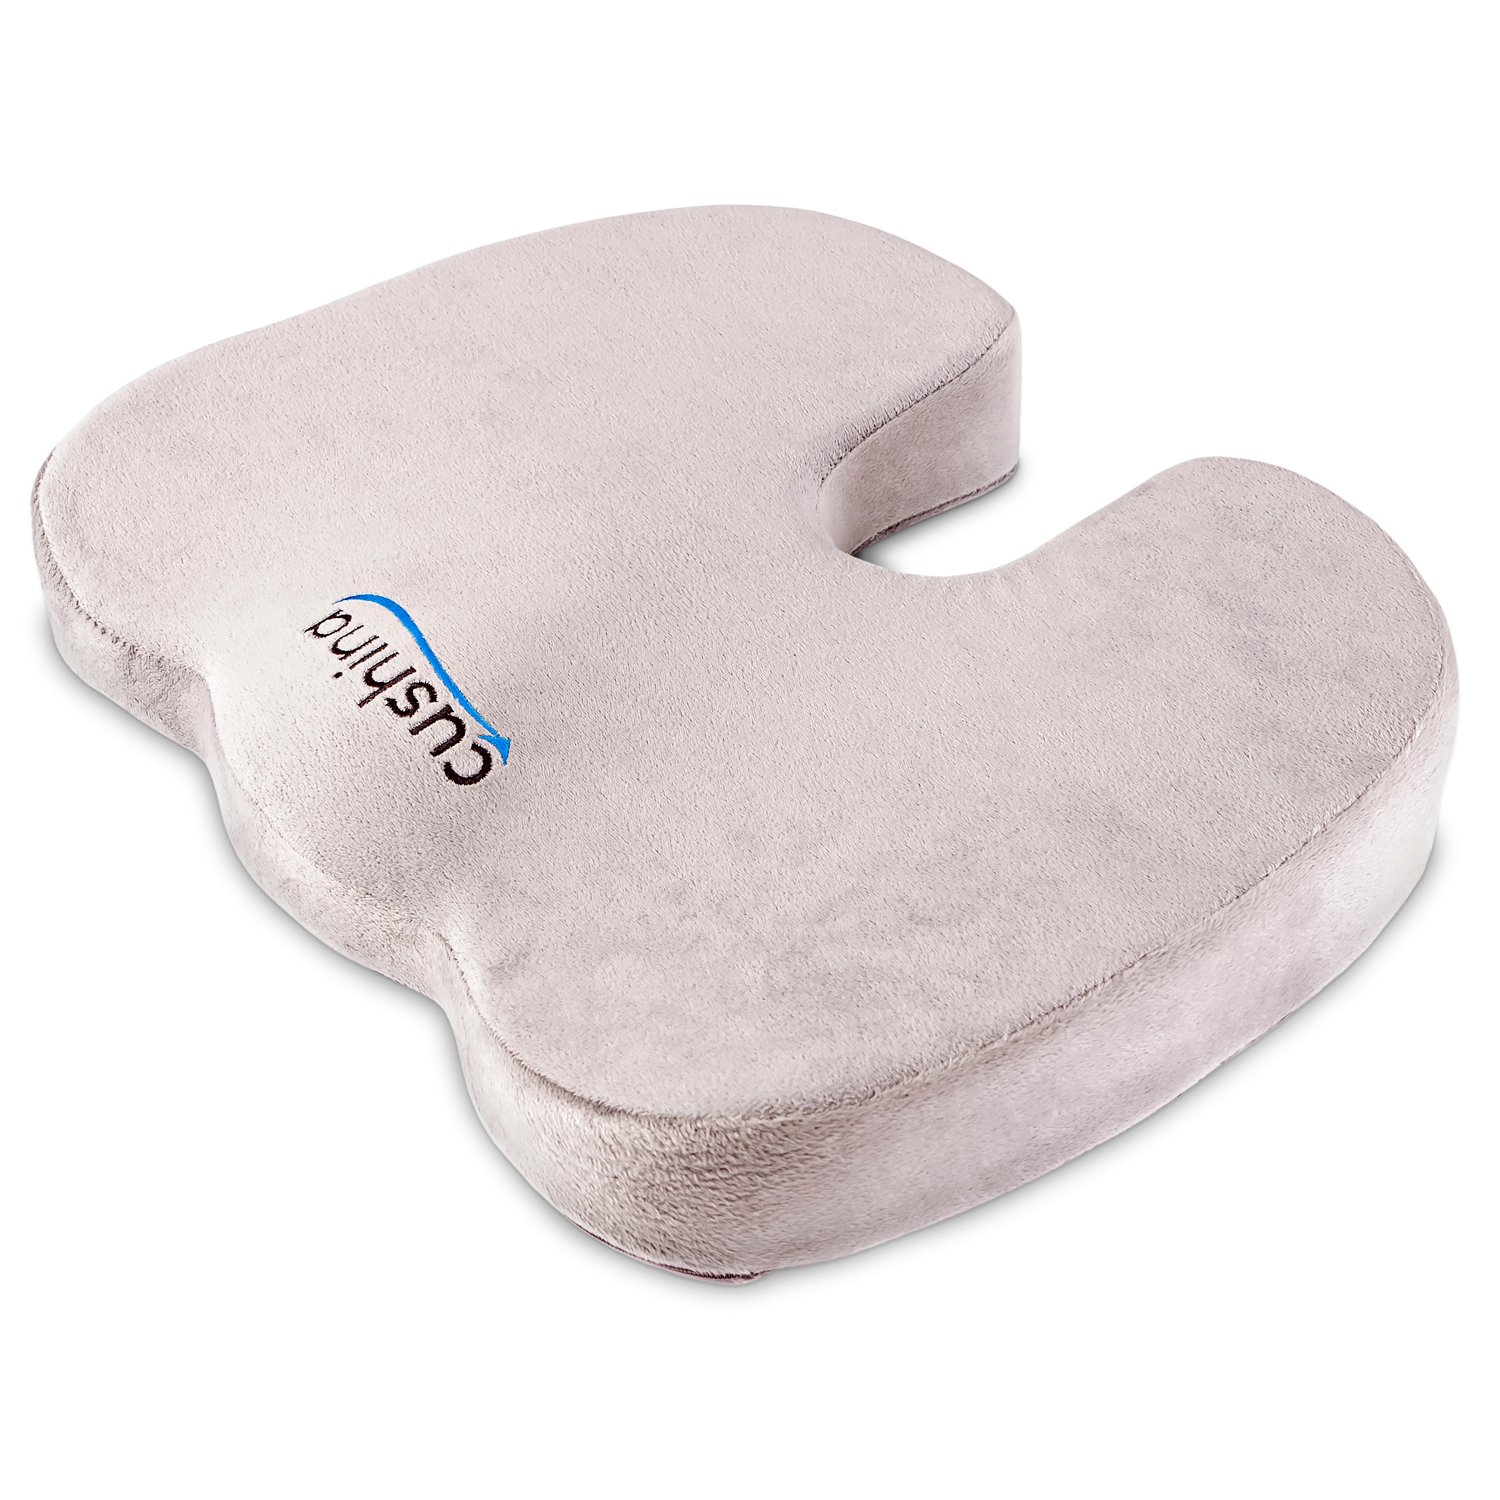 Amazon.com: Cushina 100% Premium Memory Foam Seat Cushion U0026 Orthopedic  Pillow For Coccyx, Tailbone, Lower Back And Sciatica Pain Relief   Home,  Office, Car, ...